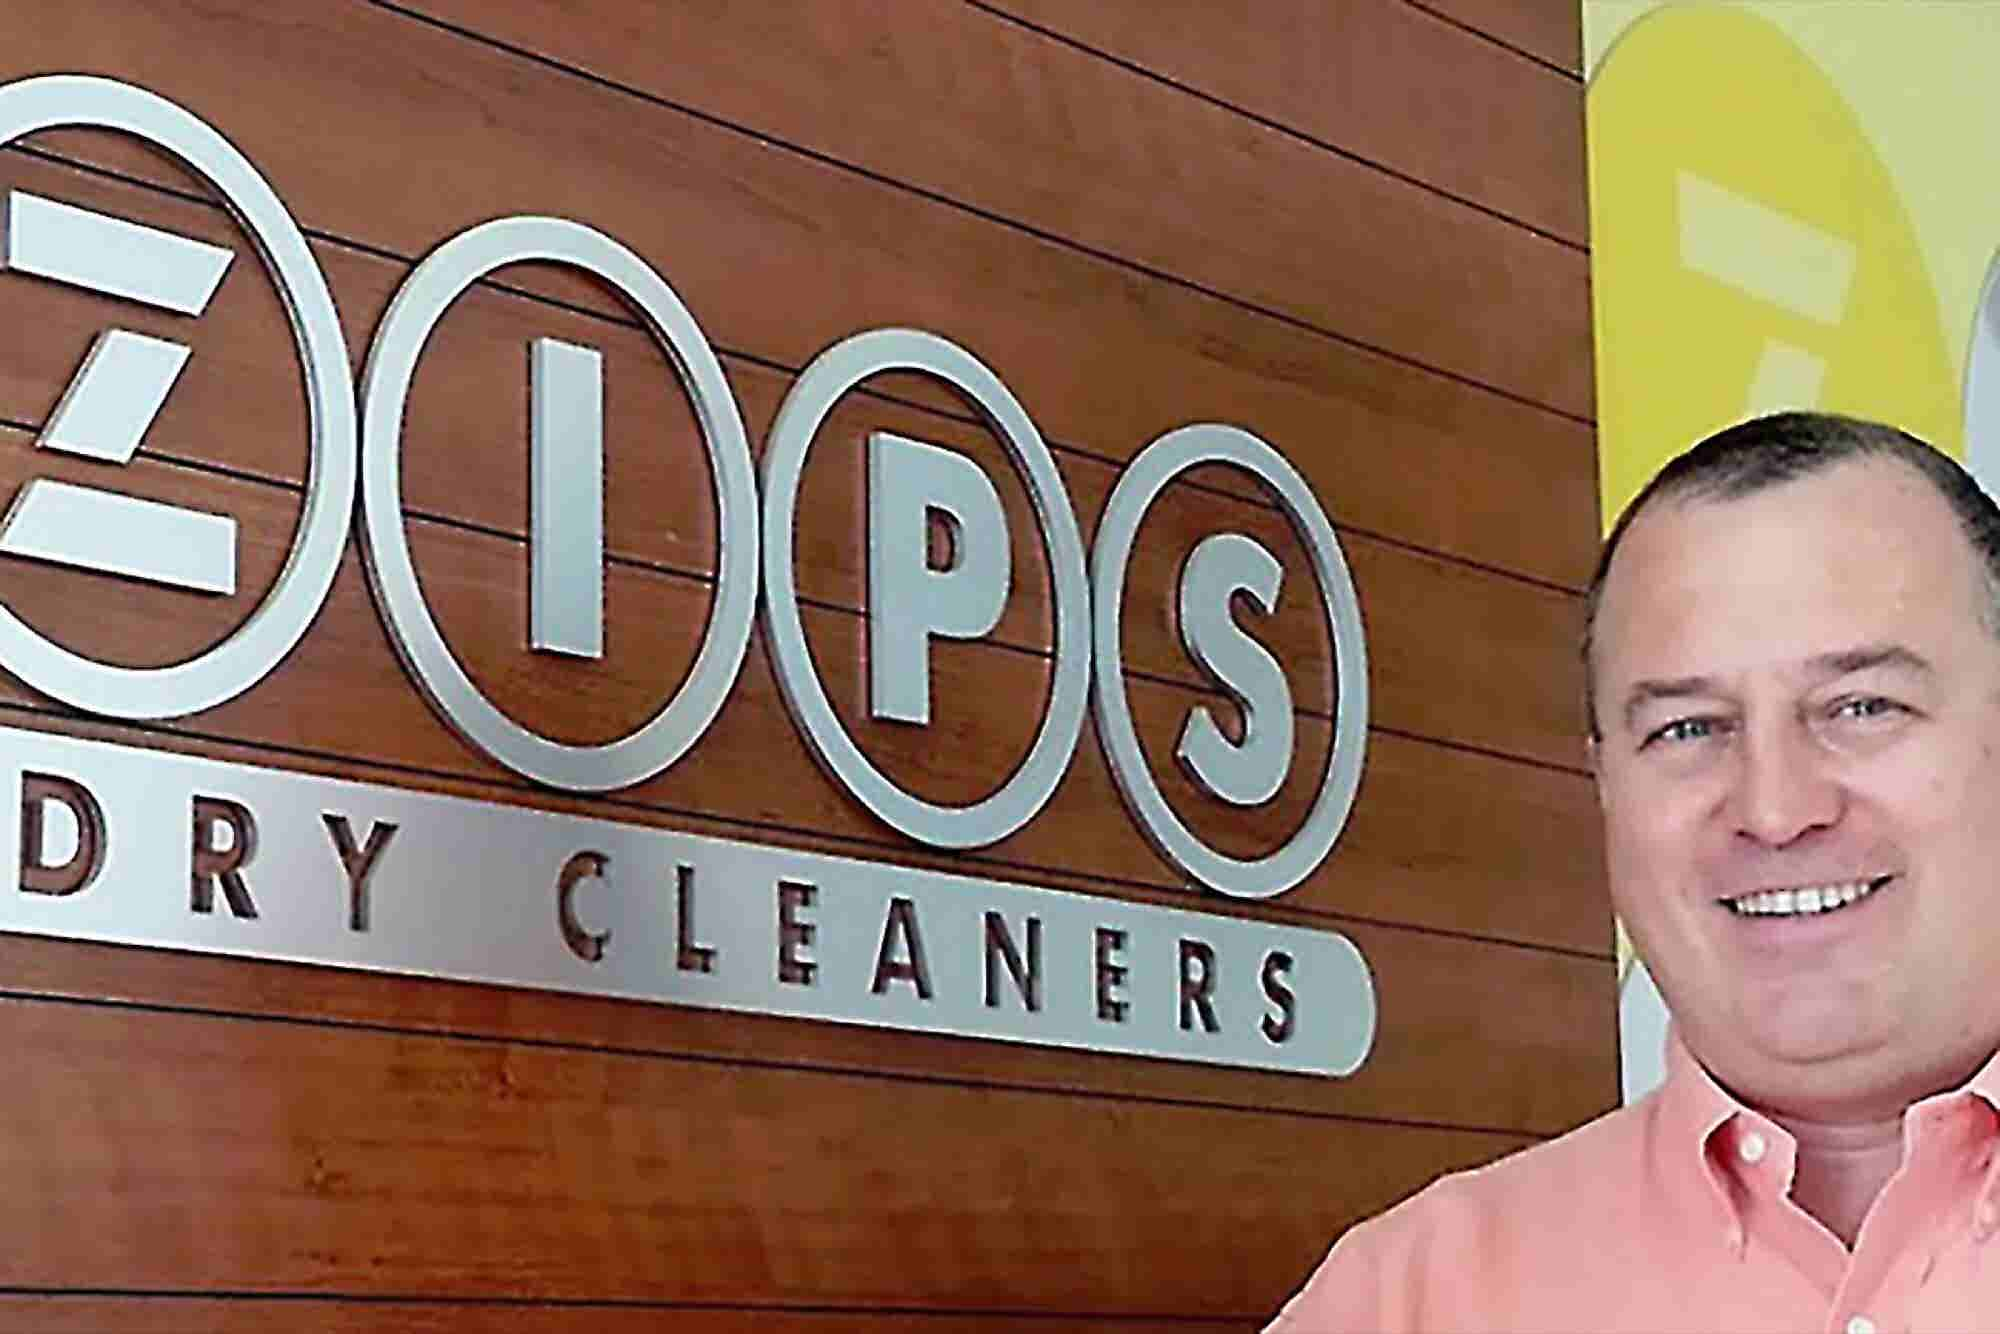 Franchise Players: An Ex-Convict Starts Life Anew as a Franchisee